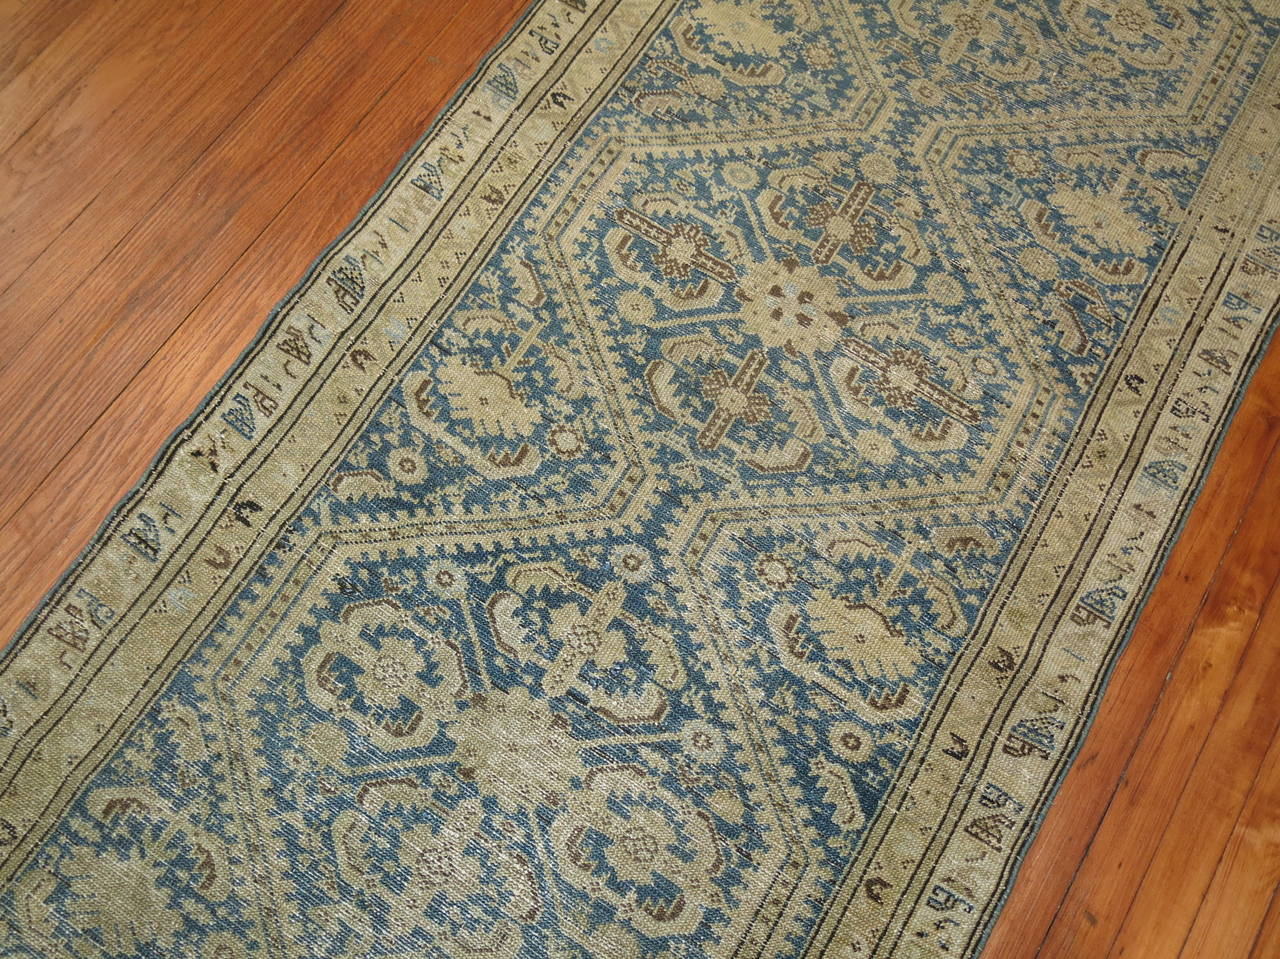 Antique Persian Light Blue Malayer Runner In Good Condition For Sale In New York, NY